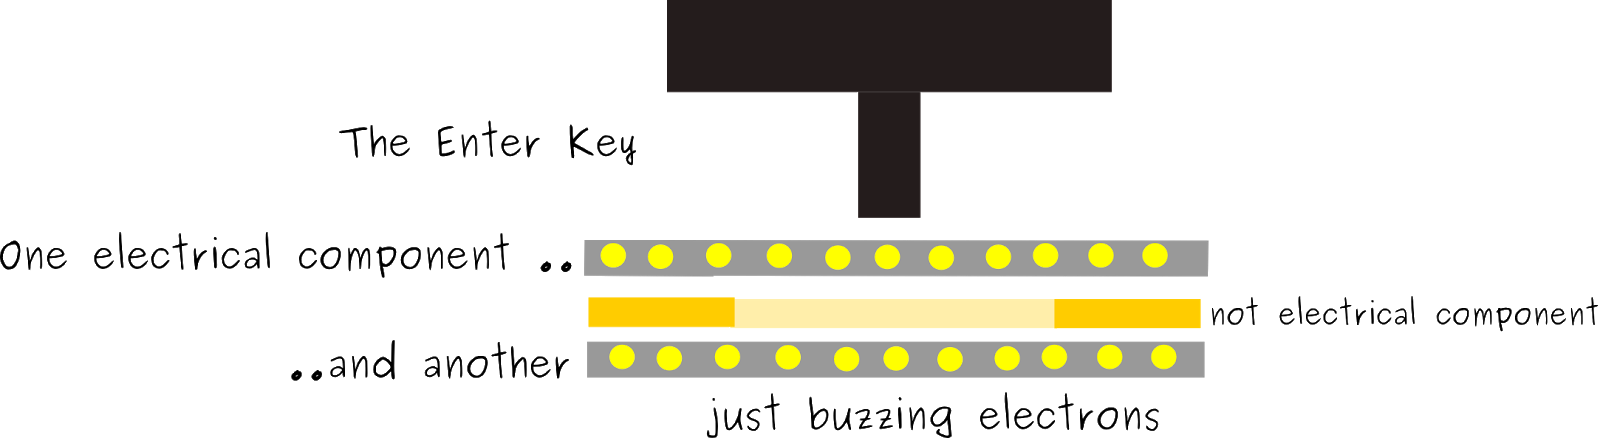 Key schematic